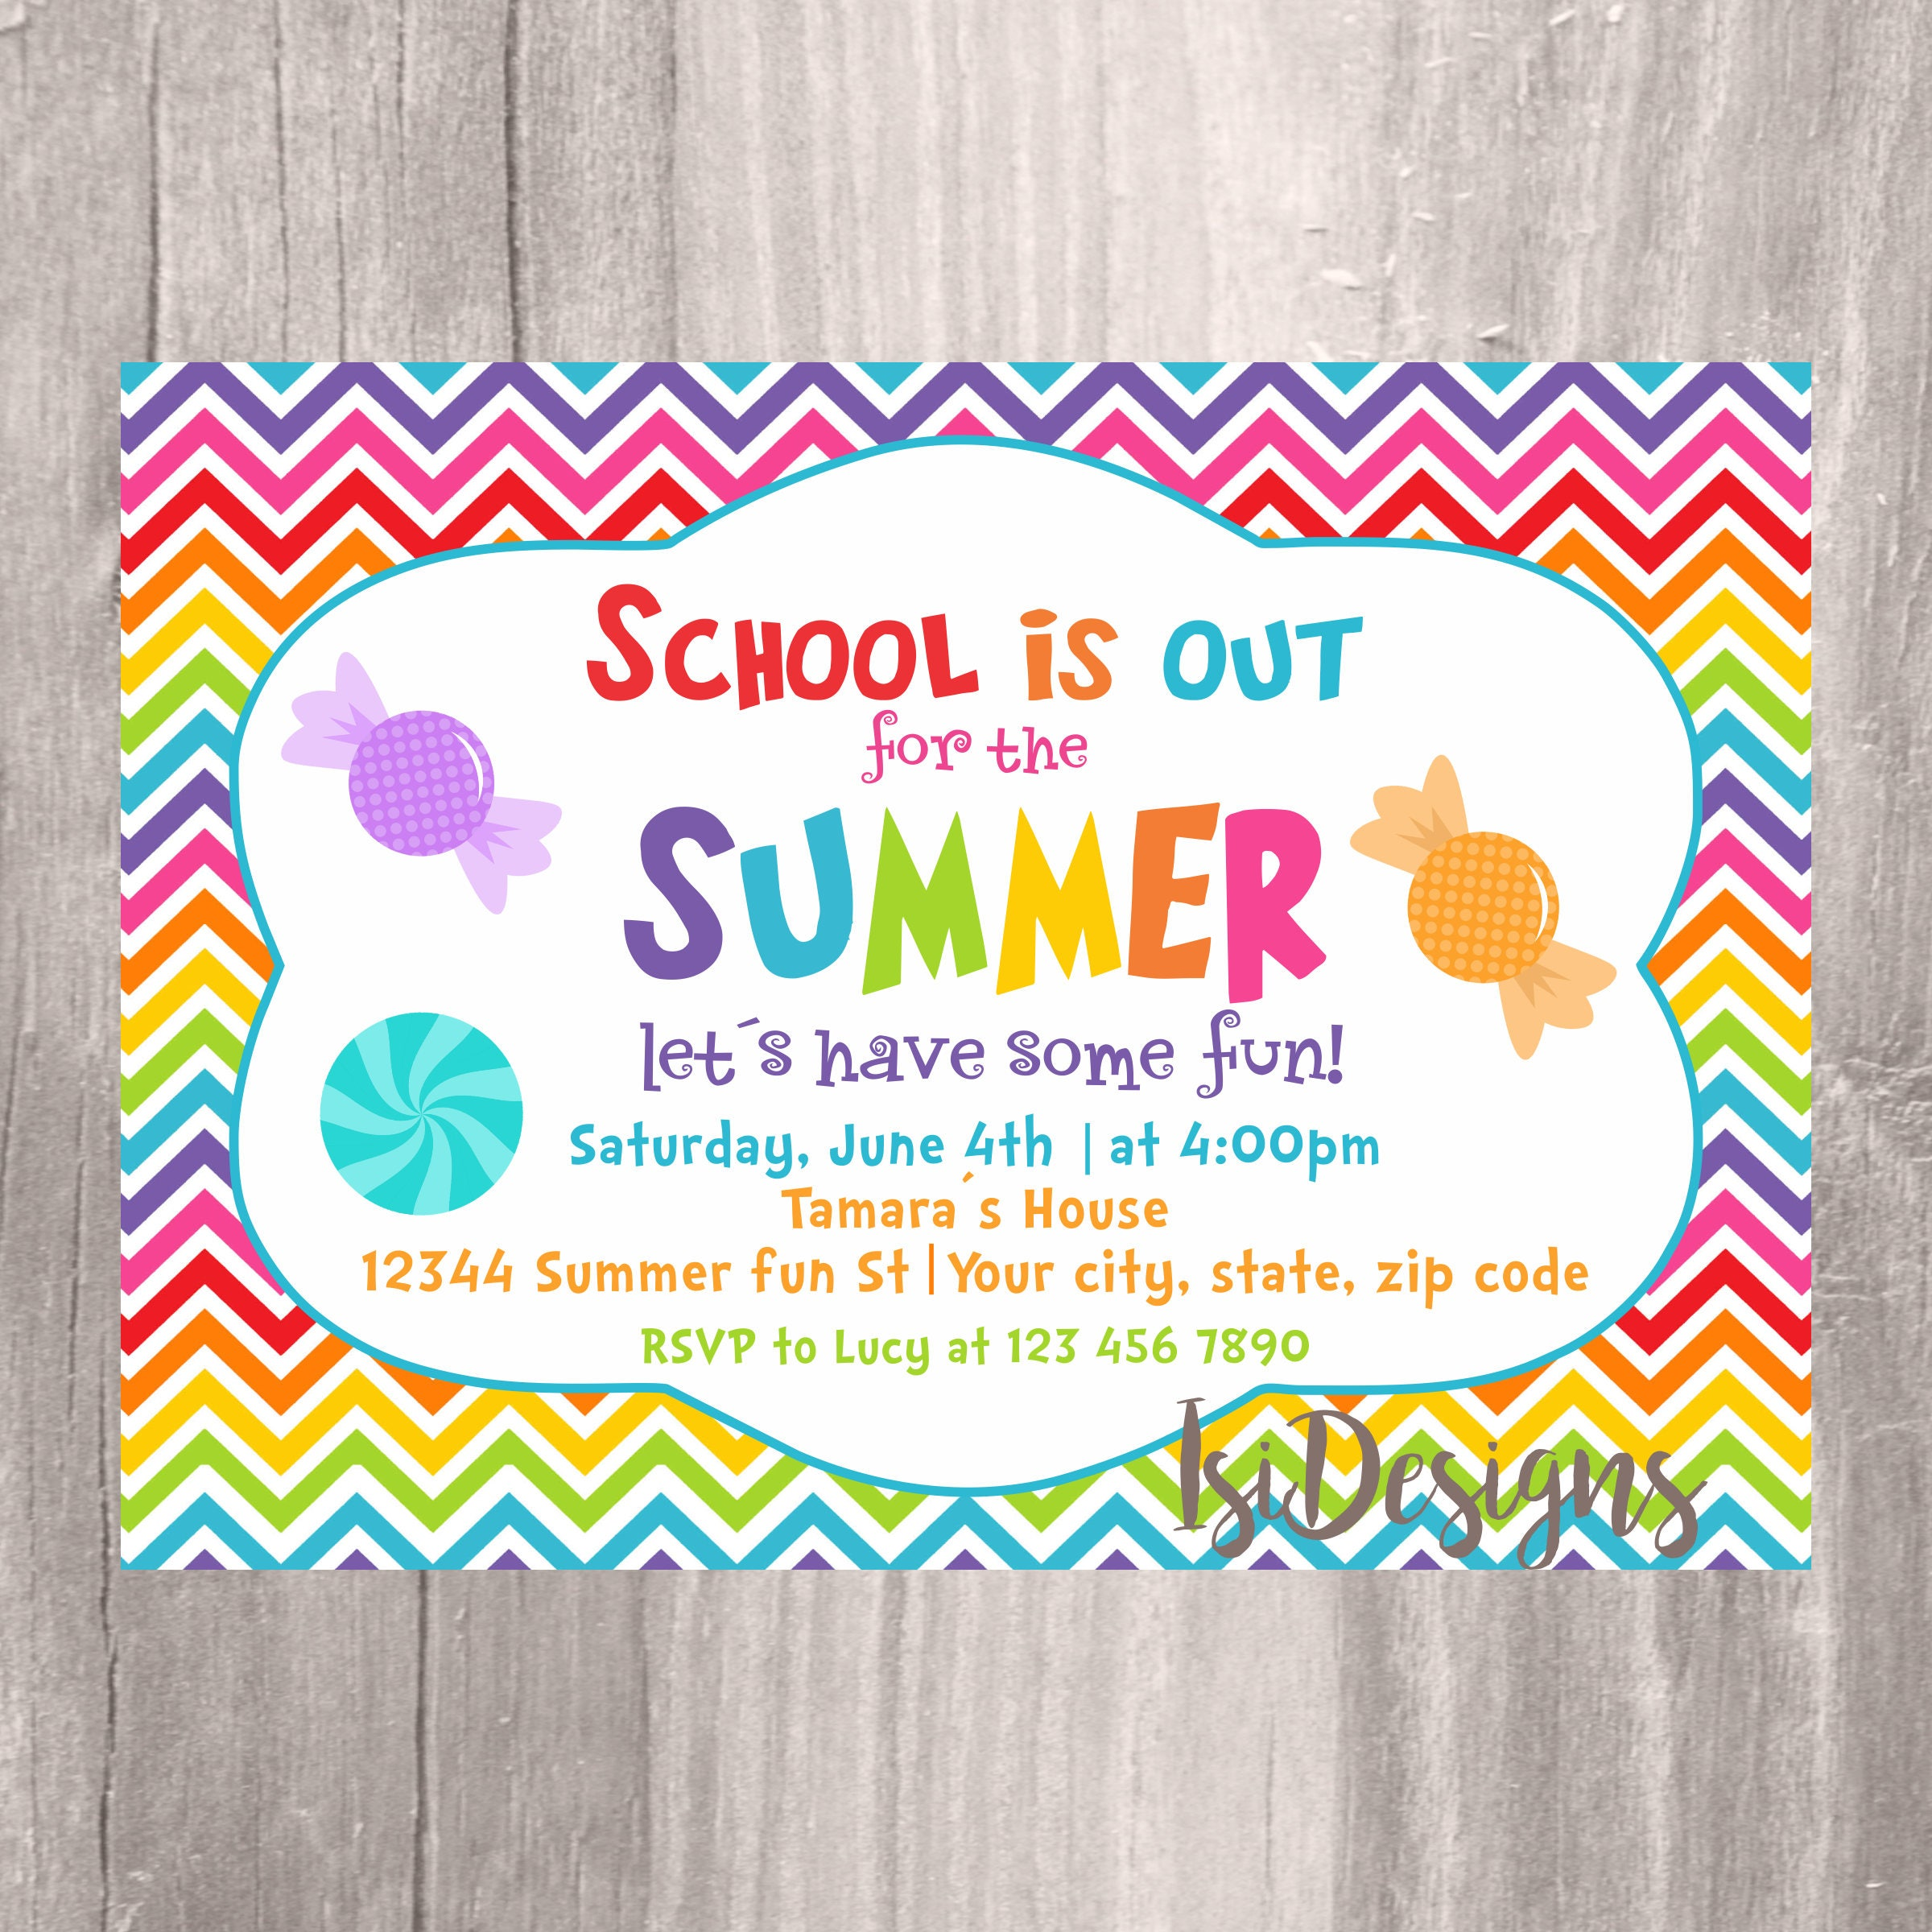 end of the year party invitation summer party school 39 s. Black Bedroom Furniture Sets. Home Design Ideas